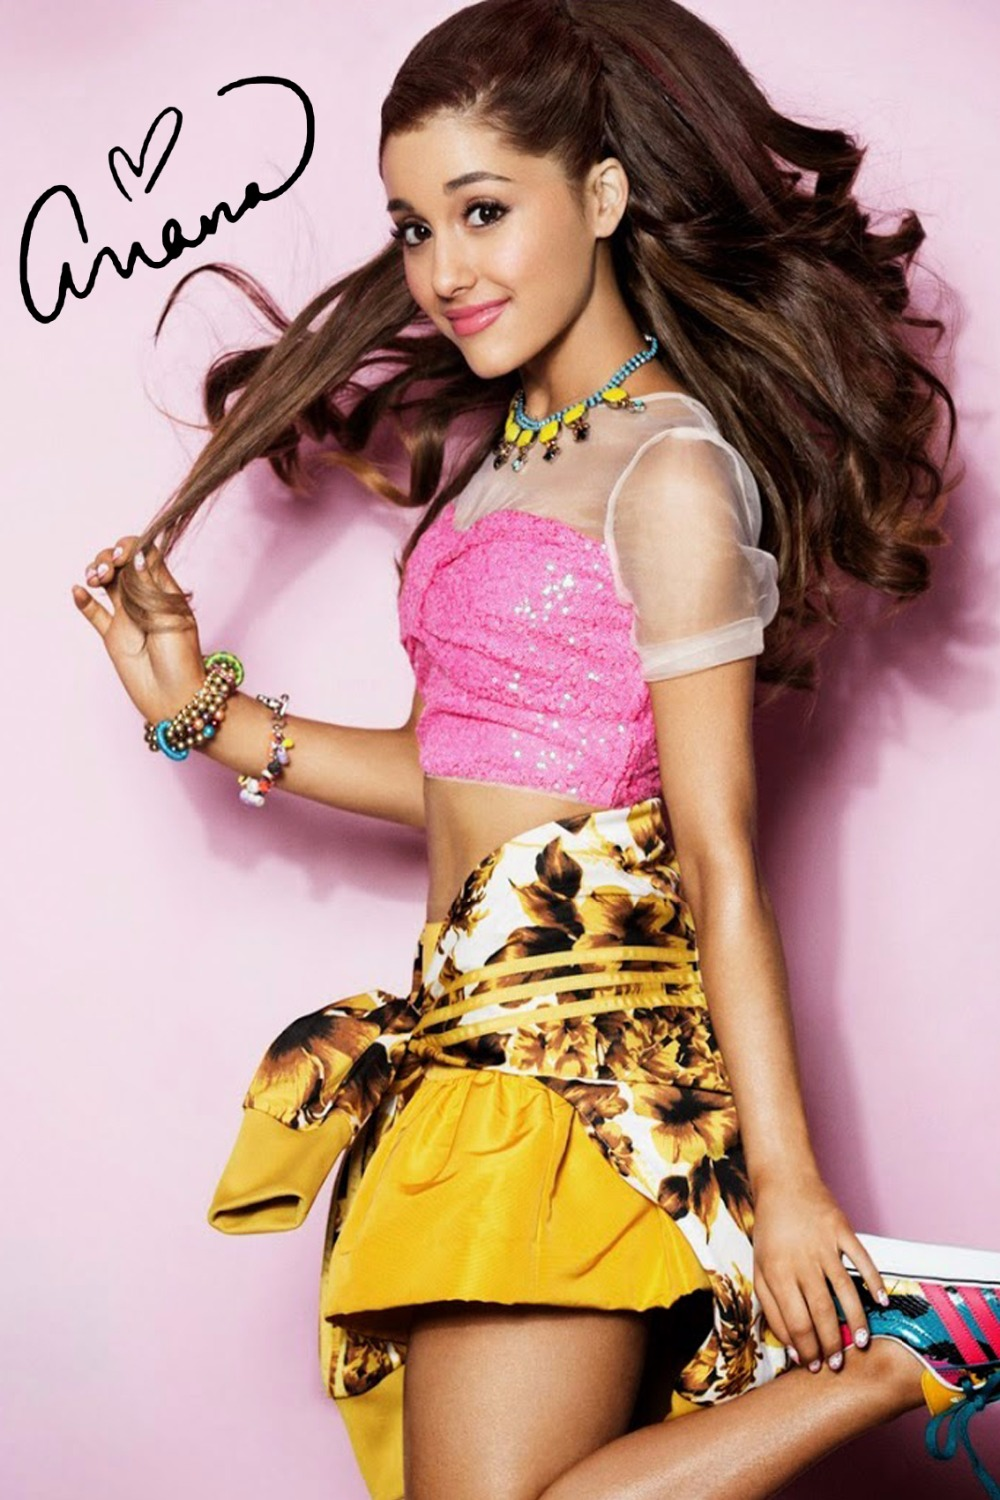 online buy wholesale ariana grande poster from china ariana grande poster wholesalers. Black Bedroom Furniture Sets. Home Design Ideas